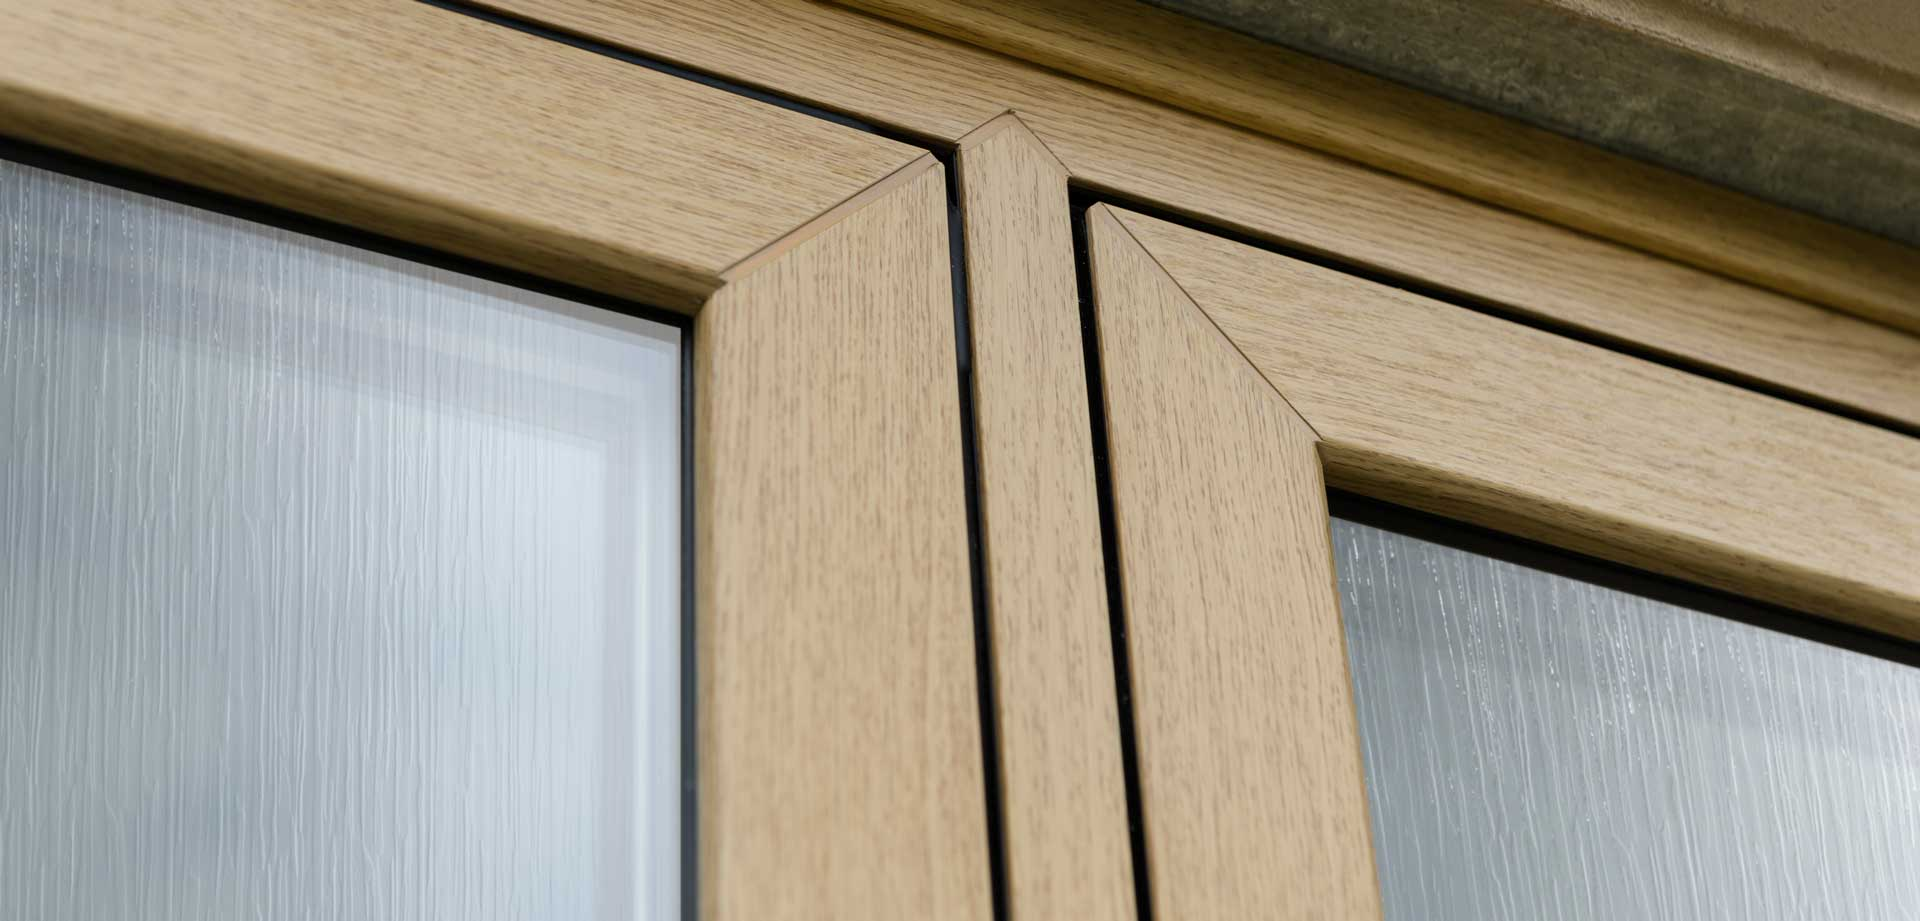 Textured Window Glass with wood frame